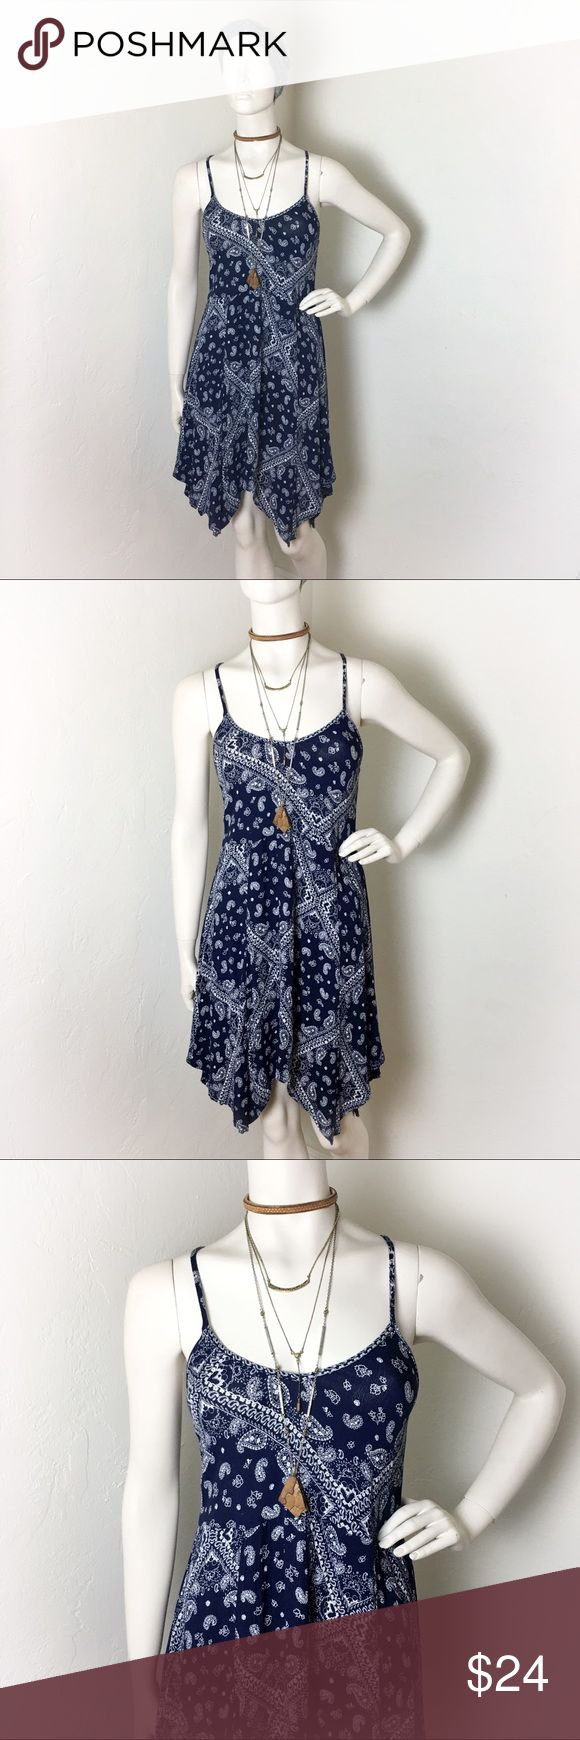 Socialite Blue Bandana Print Dress Small Dark blue bandana print summer dress. Upper adjustable straps and tie around waist back. This is in great condition. Socialite Dresses